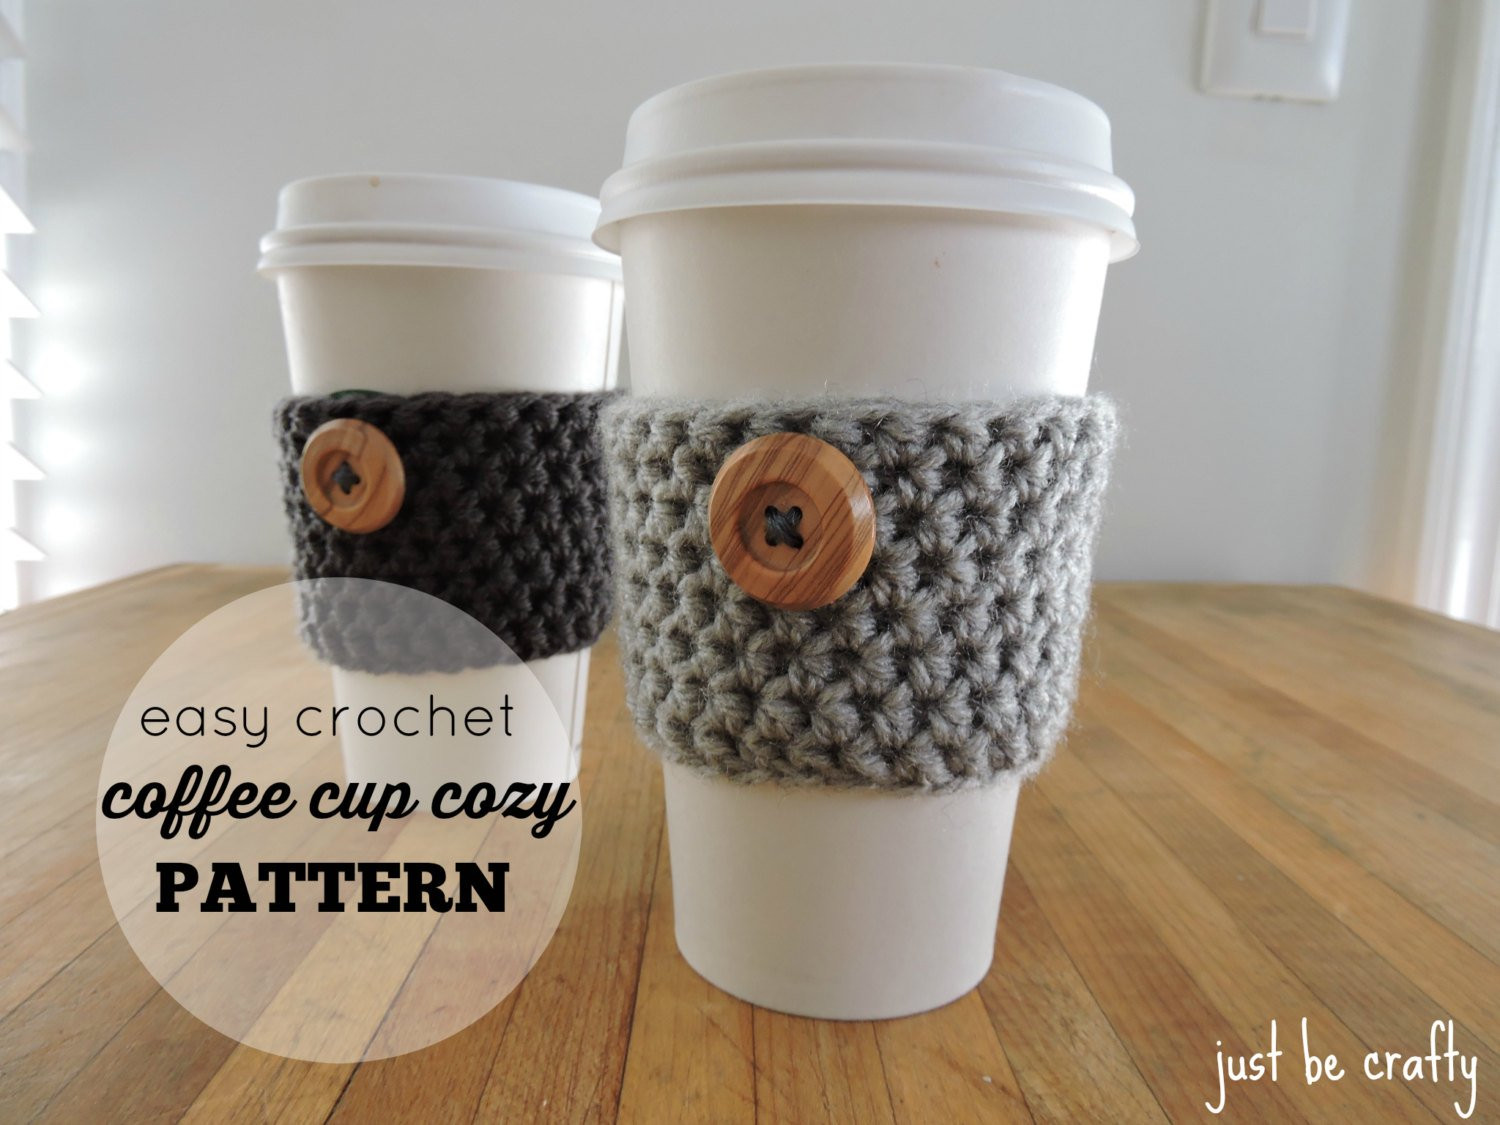 Crochet Coffee Cup Cozy Inspirational Crochet Coffee Cup Cozy Pattern Pdf Download Coffee Cup Cozy Of Crochet Coffee Cup Cozy Awesome Crochet and Other Stuff Crochet A Mug Cozy Free Pattern